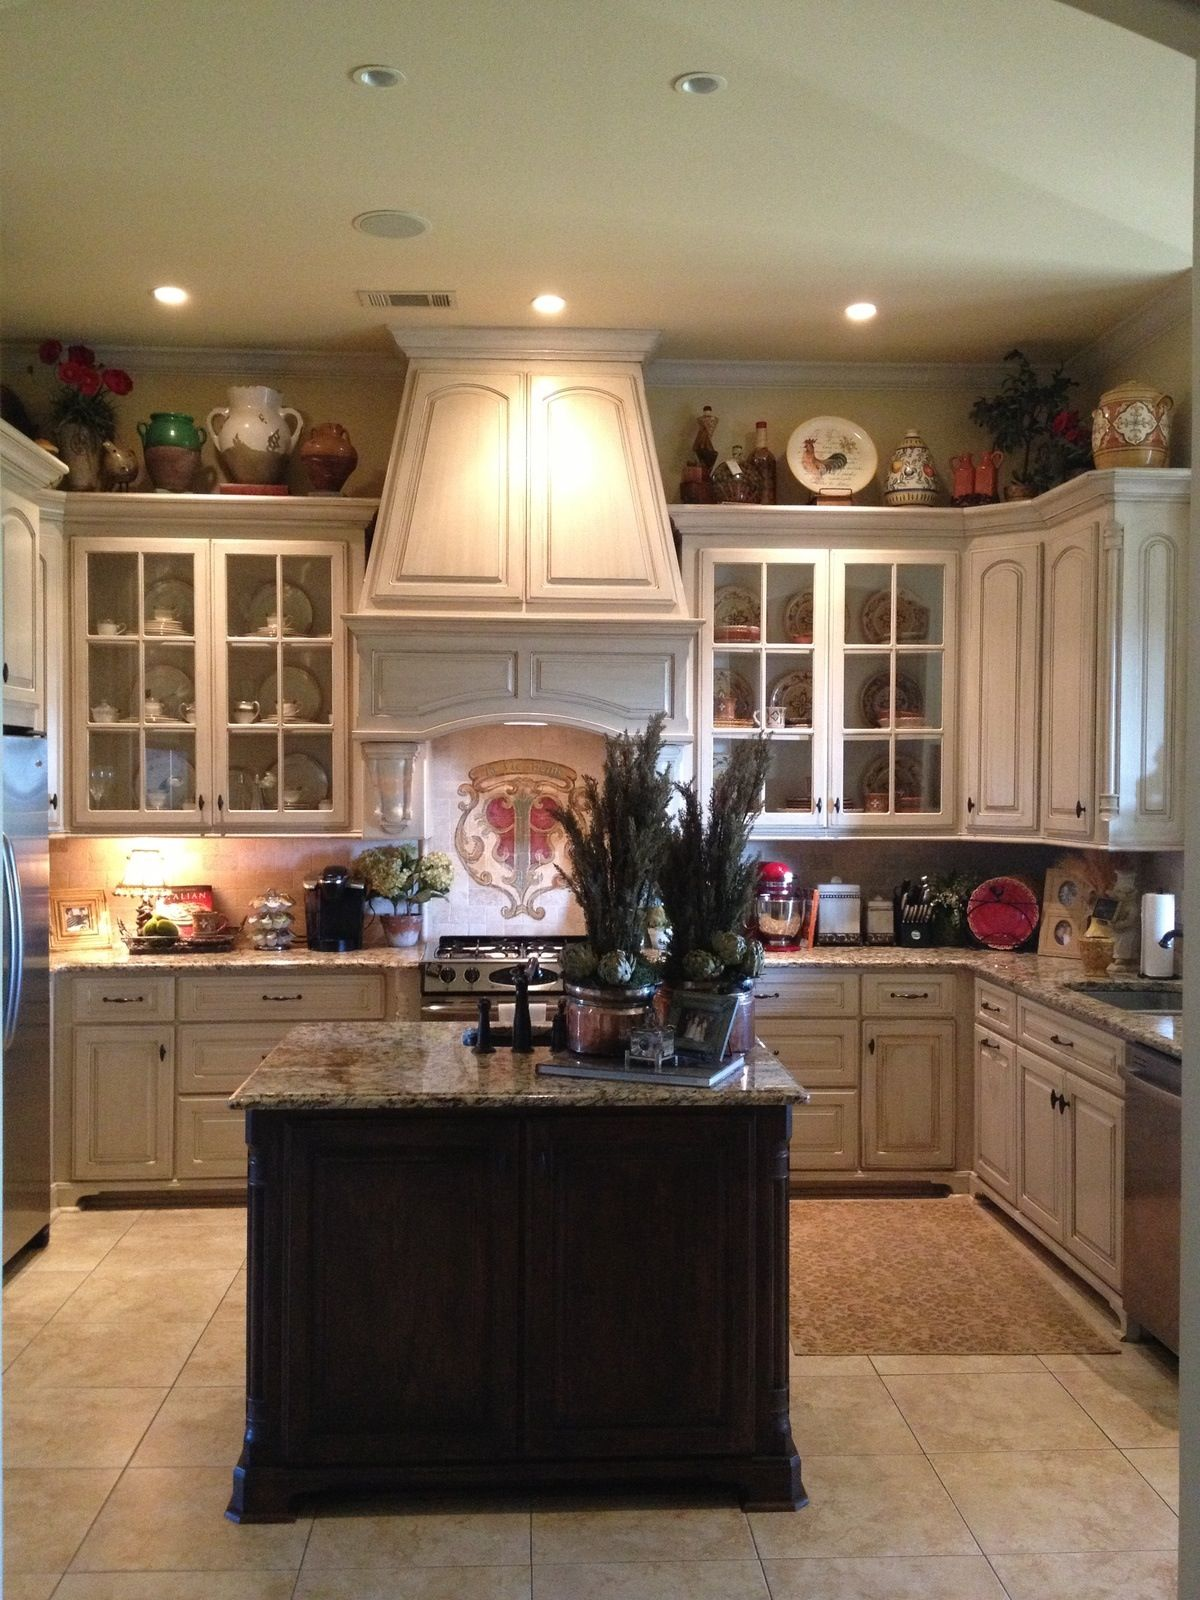 French Country Kitchen   House ~ Cookery Inspirations!   Pinterest ...